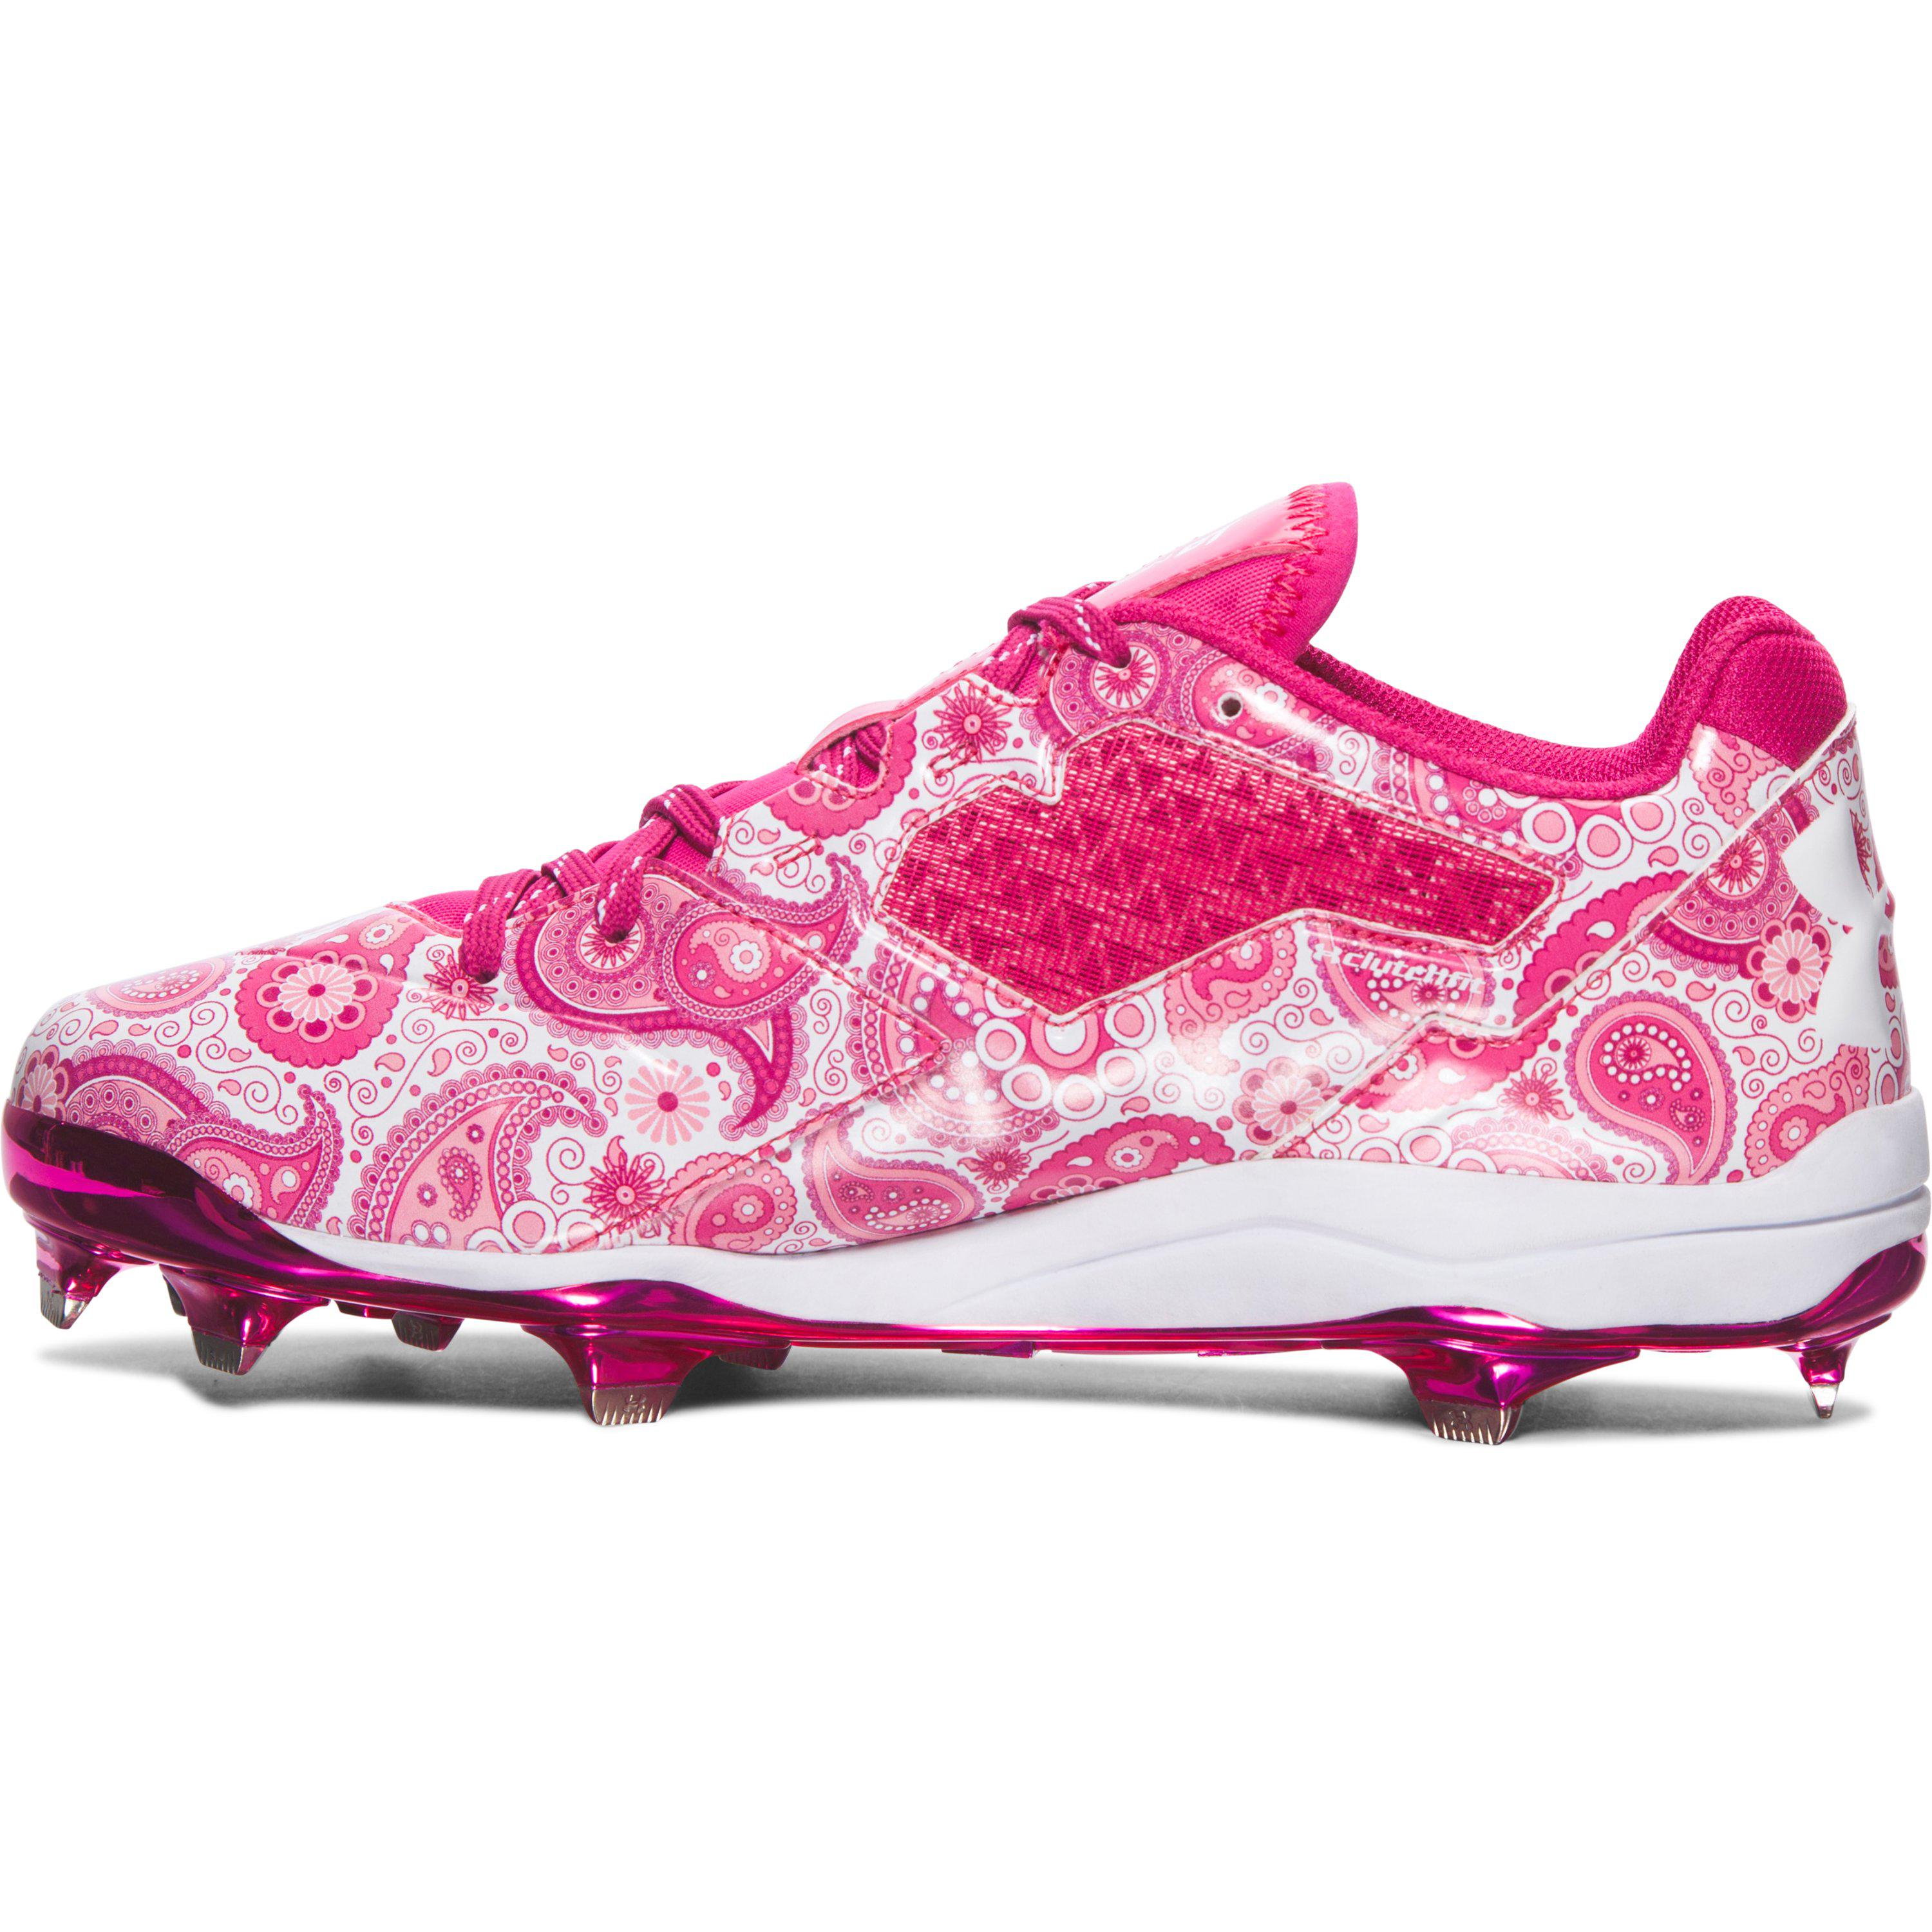 new concept ab7da 73355 Under Armour Pink Mens Ua Mothers Day Edition Diamondtips Baseball Cleats  for Men Lyst.